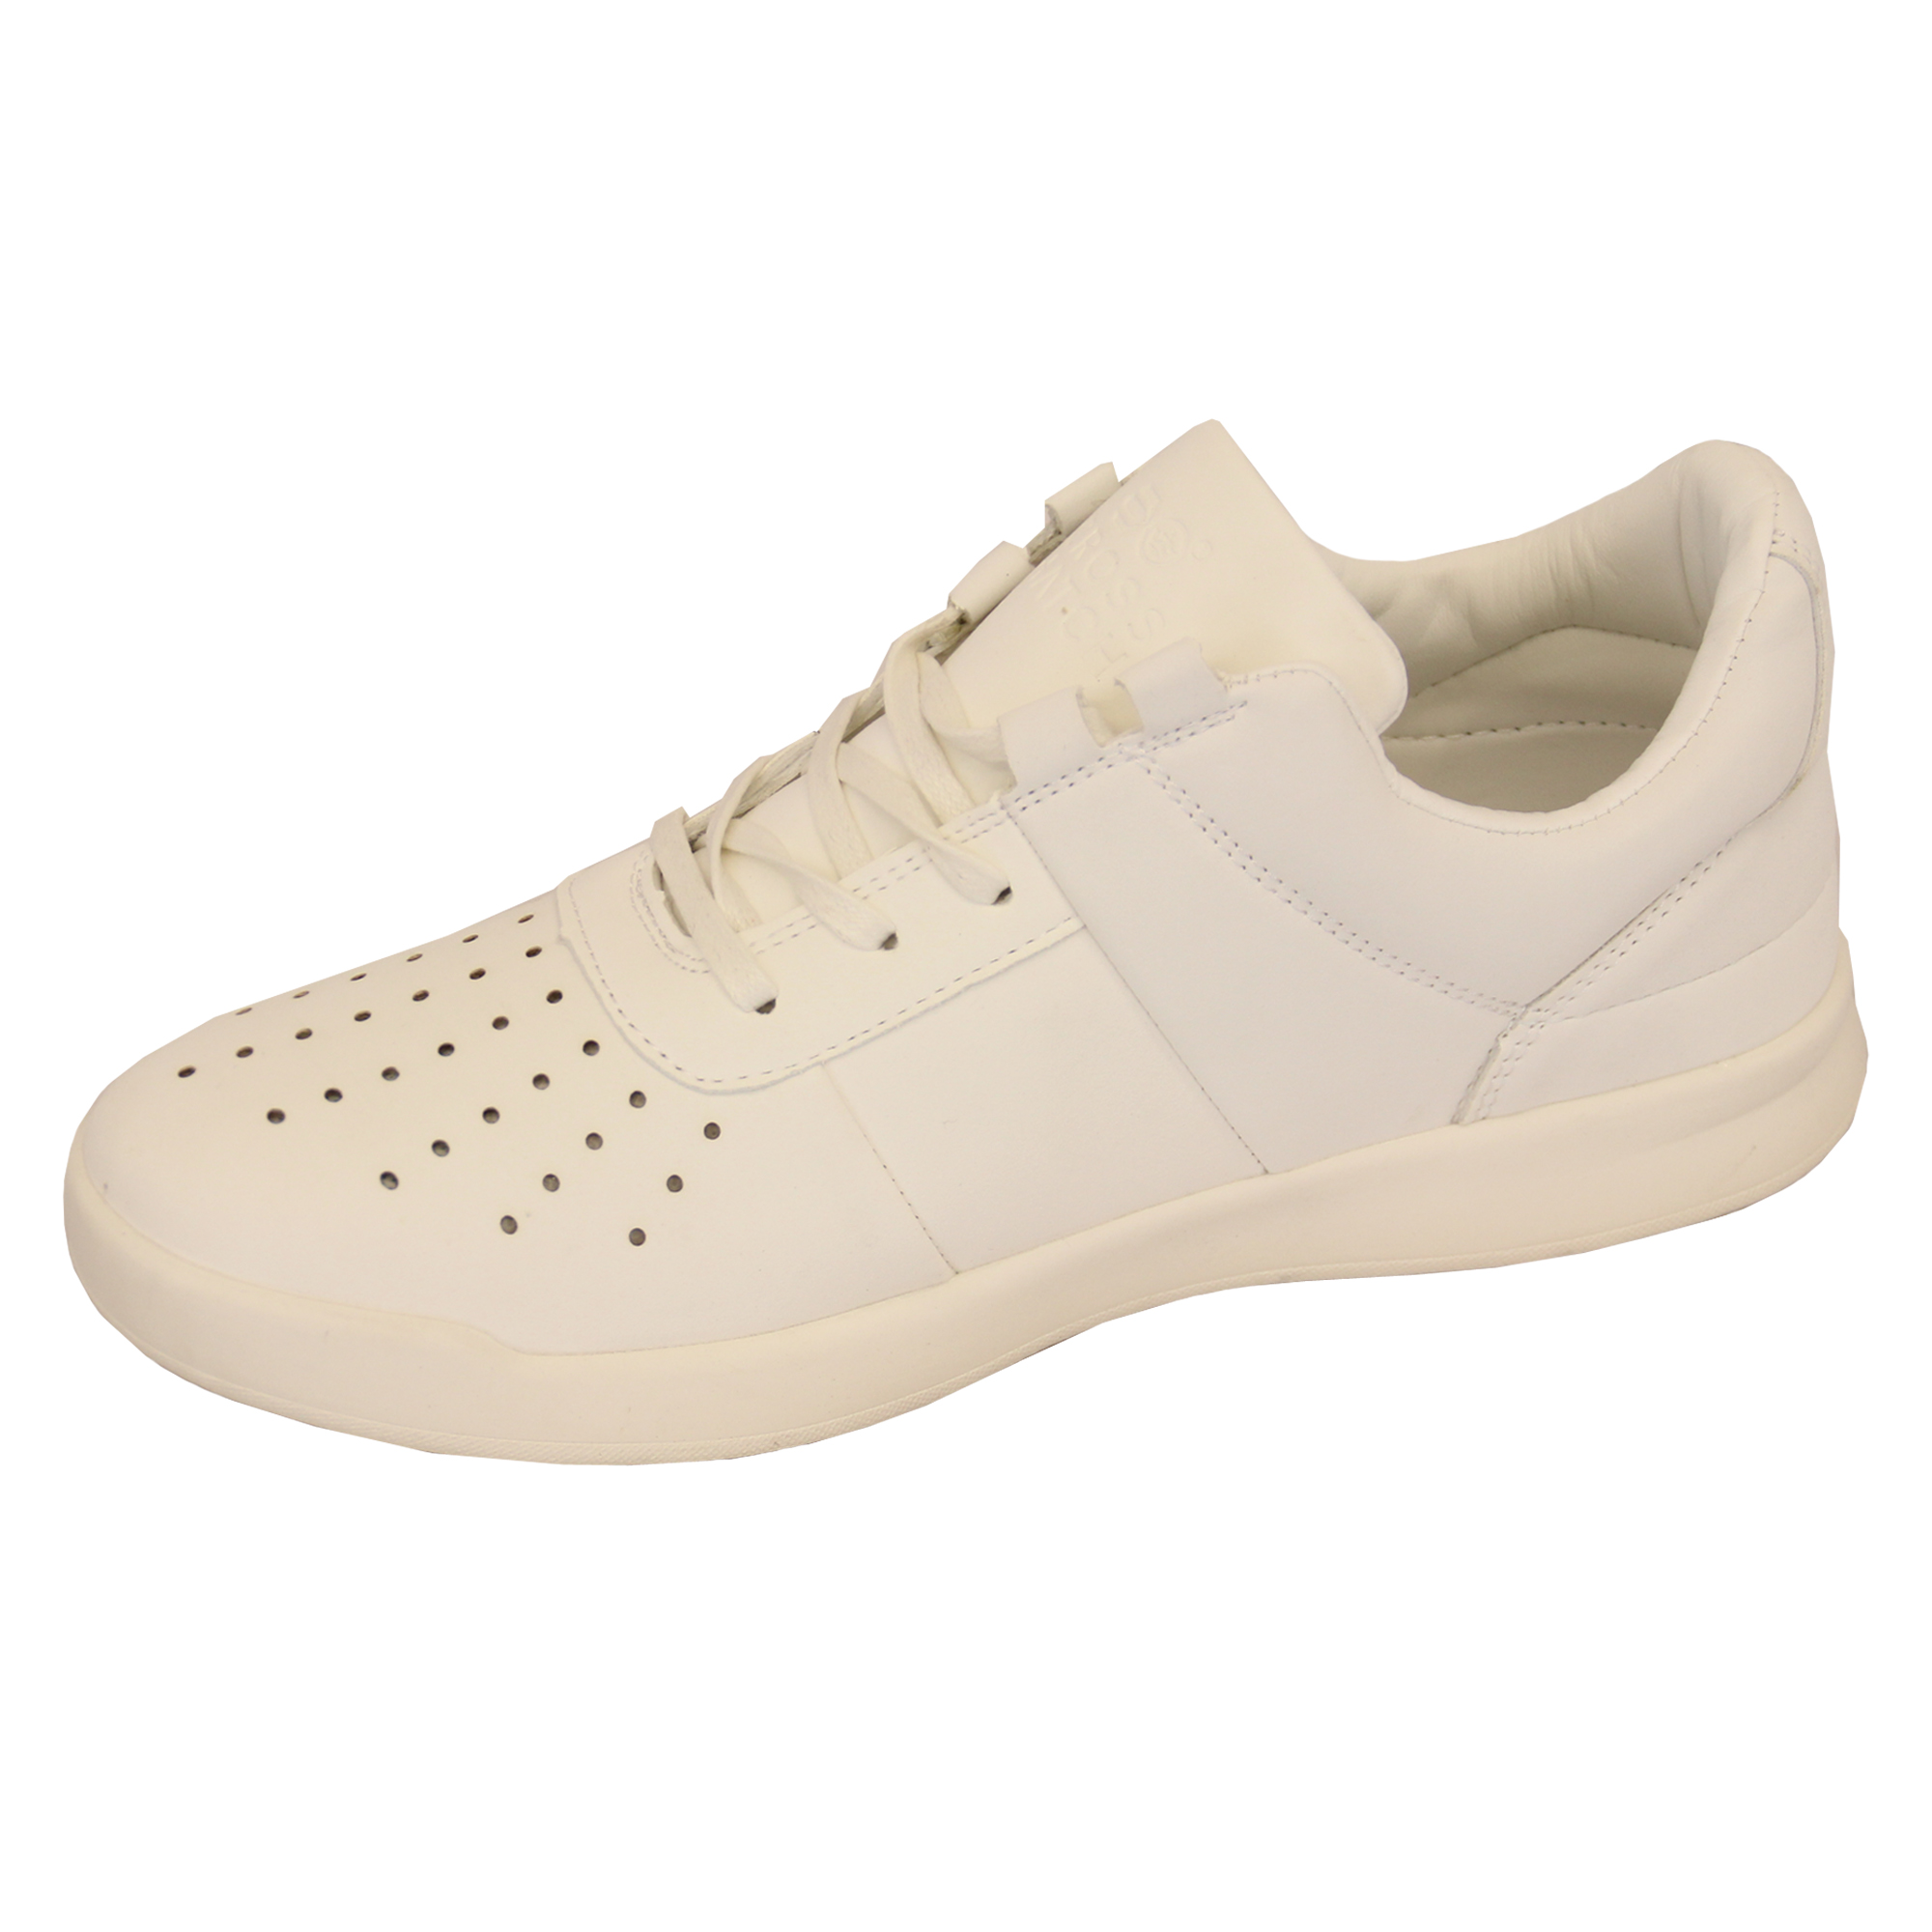 Mens-Trainers-Crosshatch-Running-Lace-Up-Jogging-Sports-Gym-Shoes-Casual-Fashion thumbnail 6